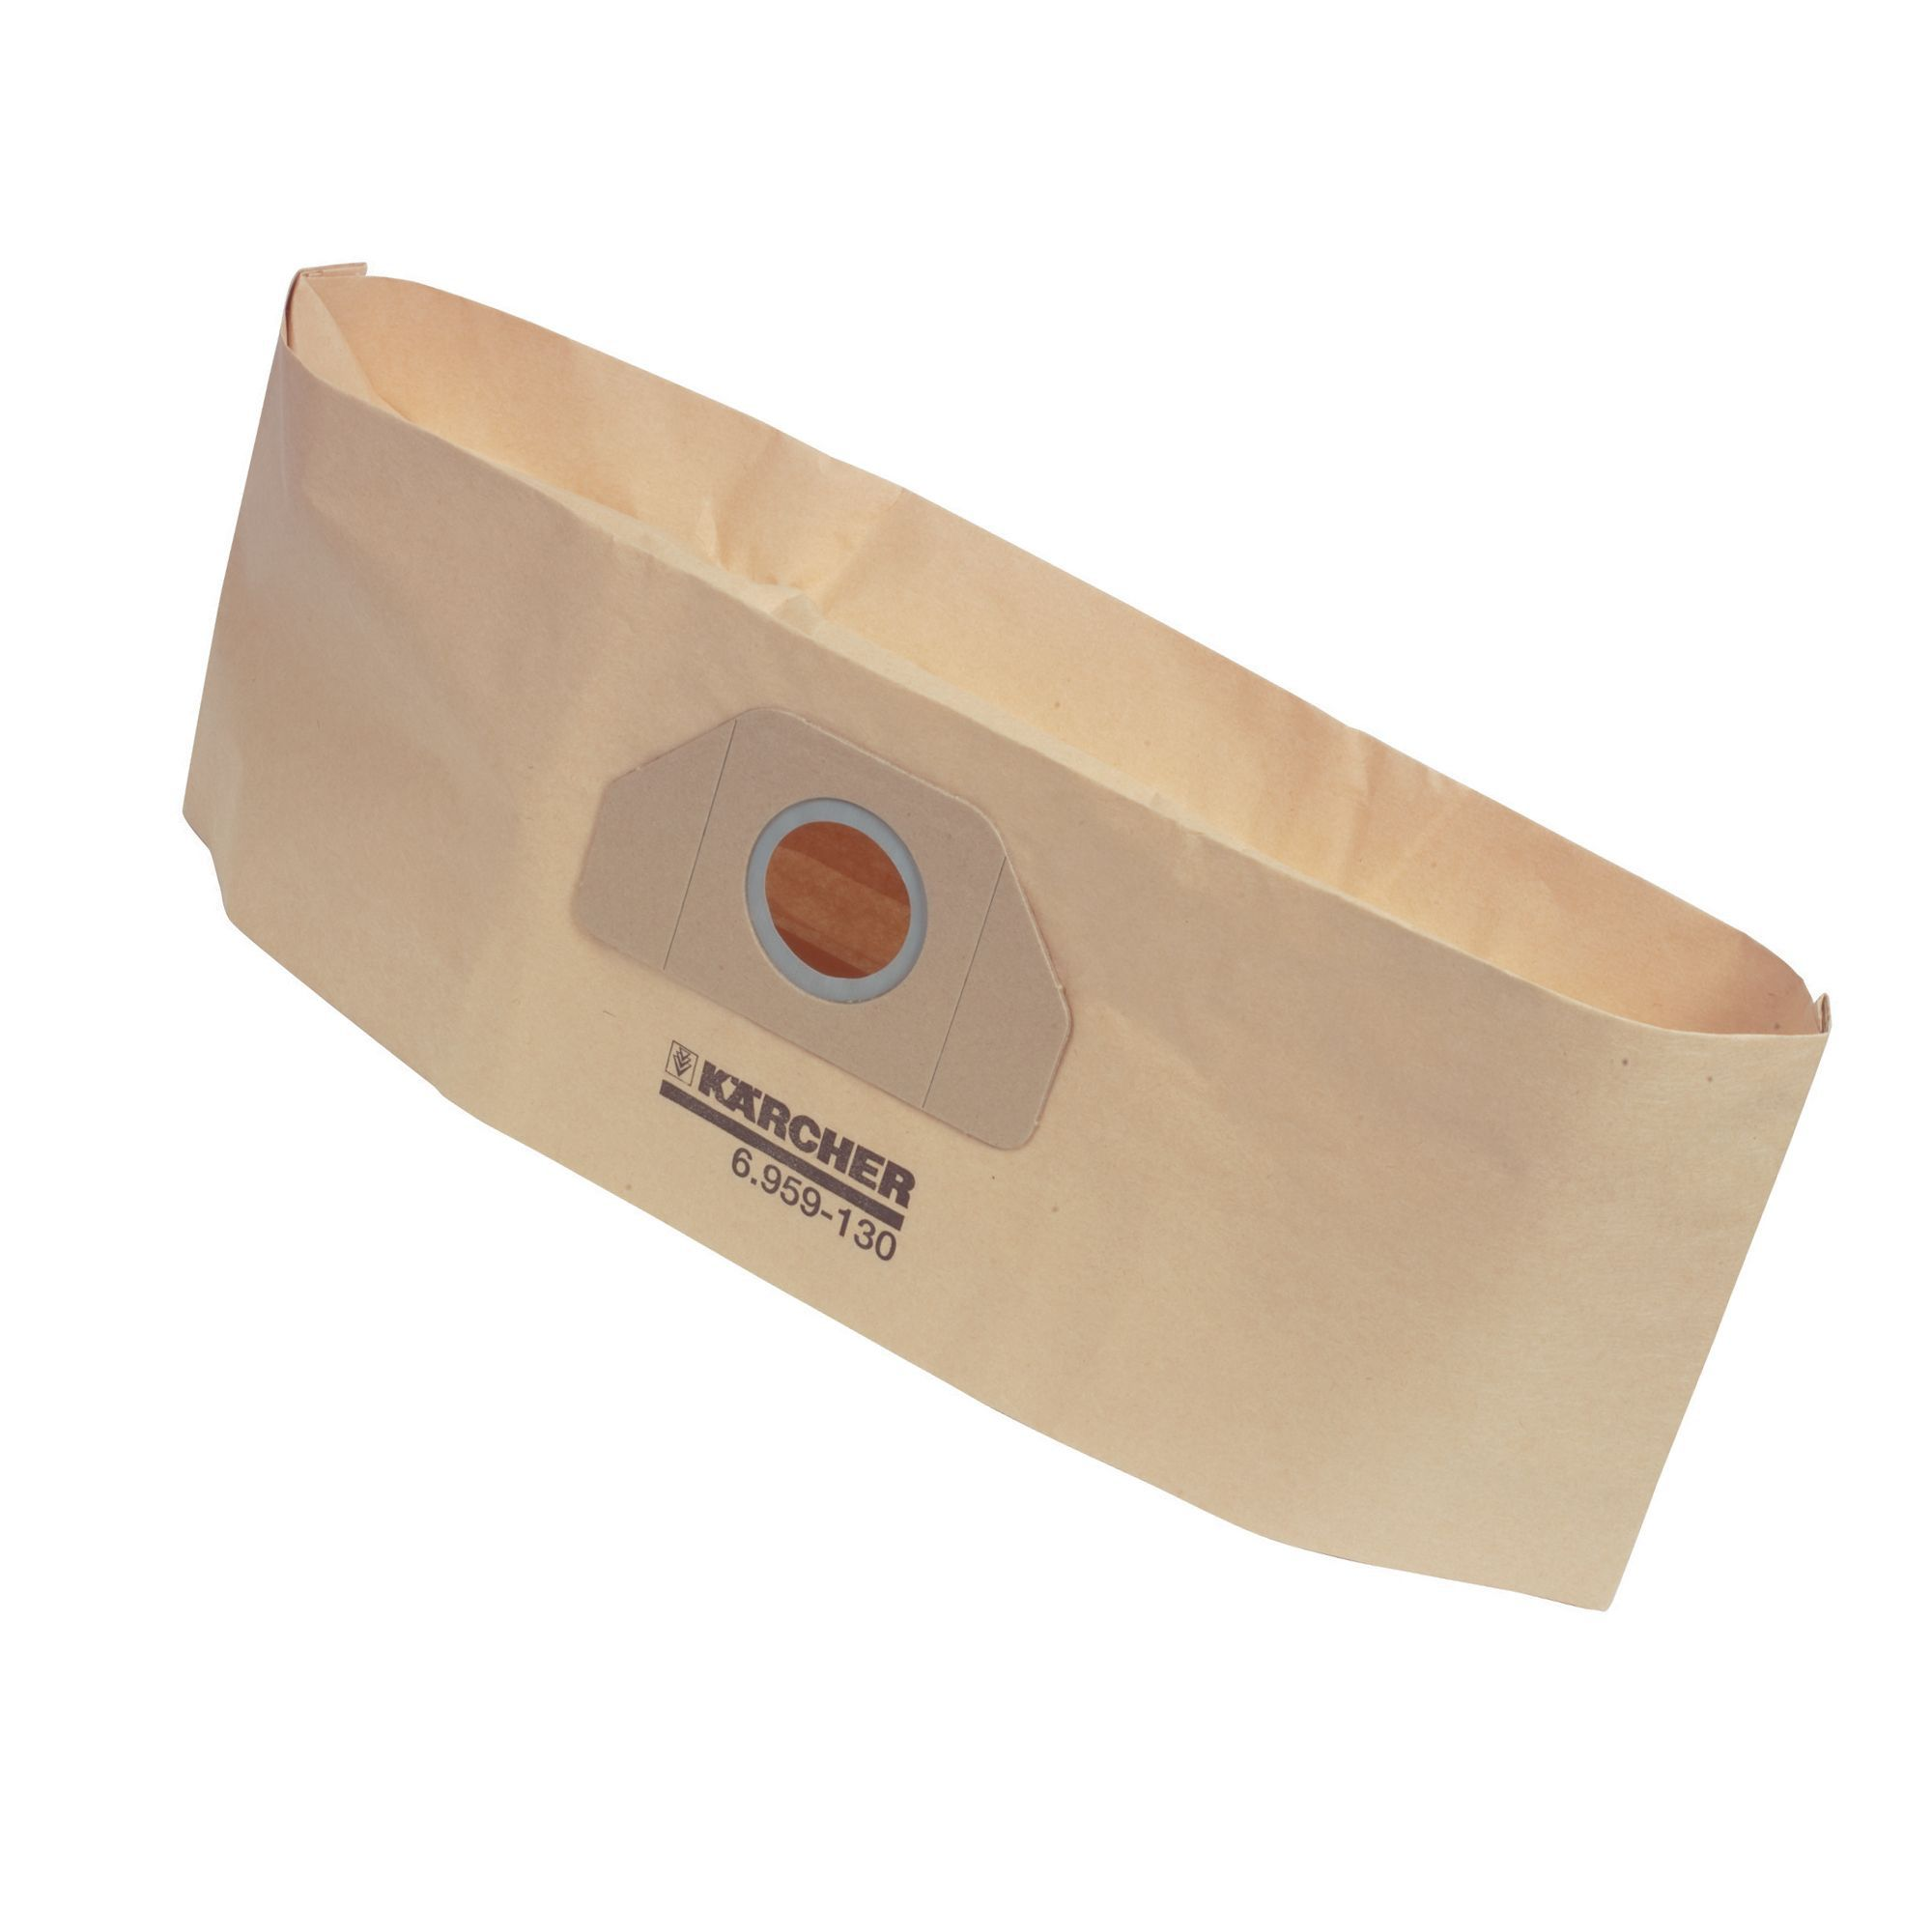 Karcher A2200 & A2554 Vacuum bags, Pack of 5 | Departments ...